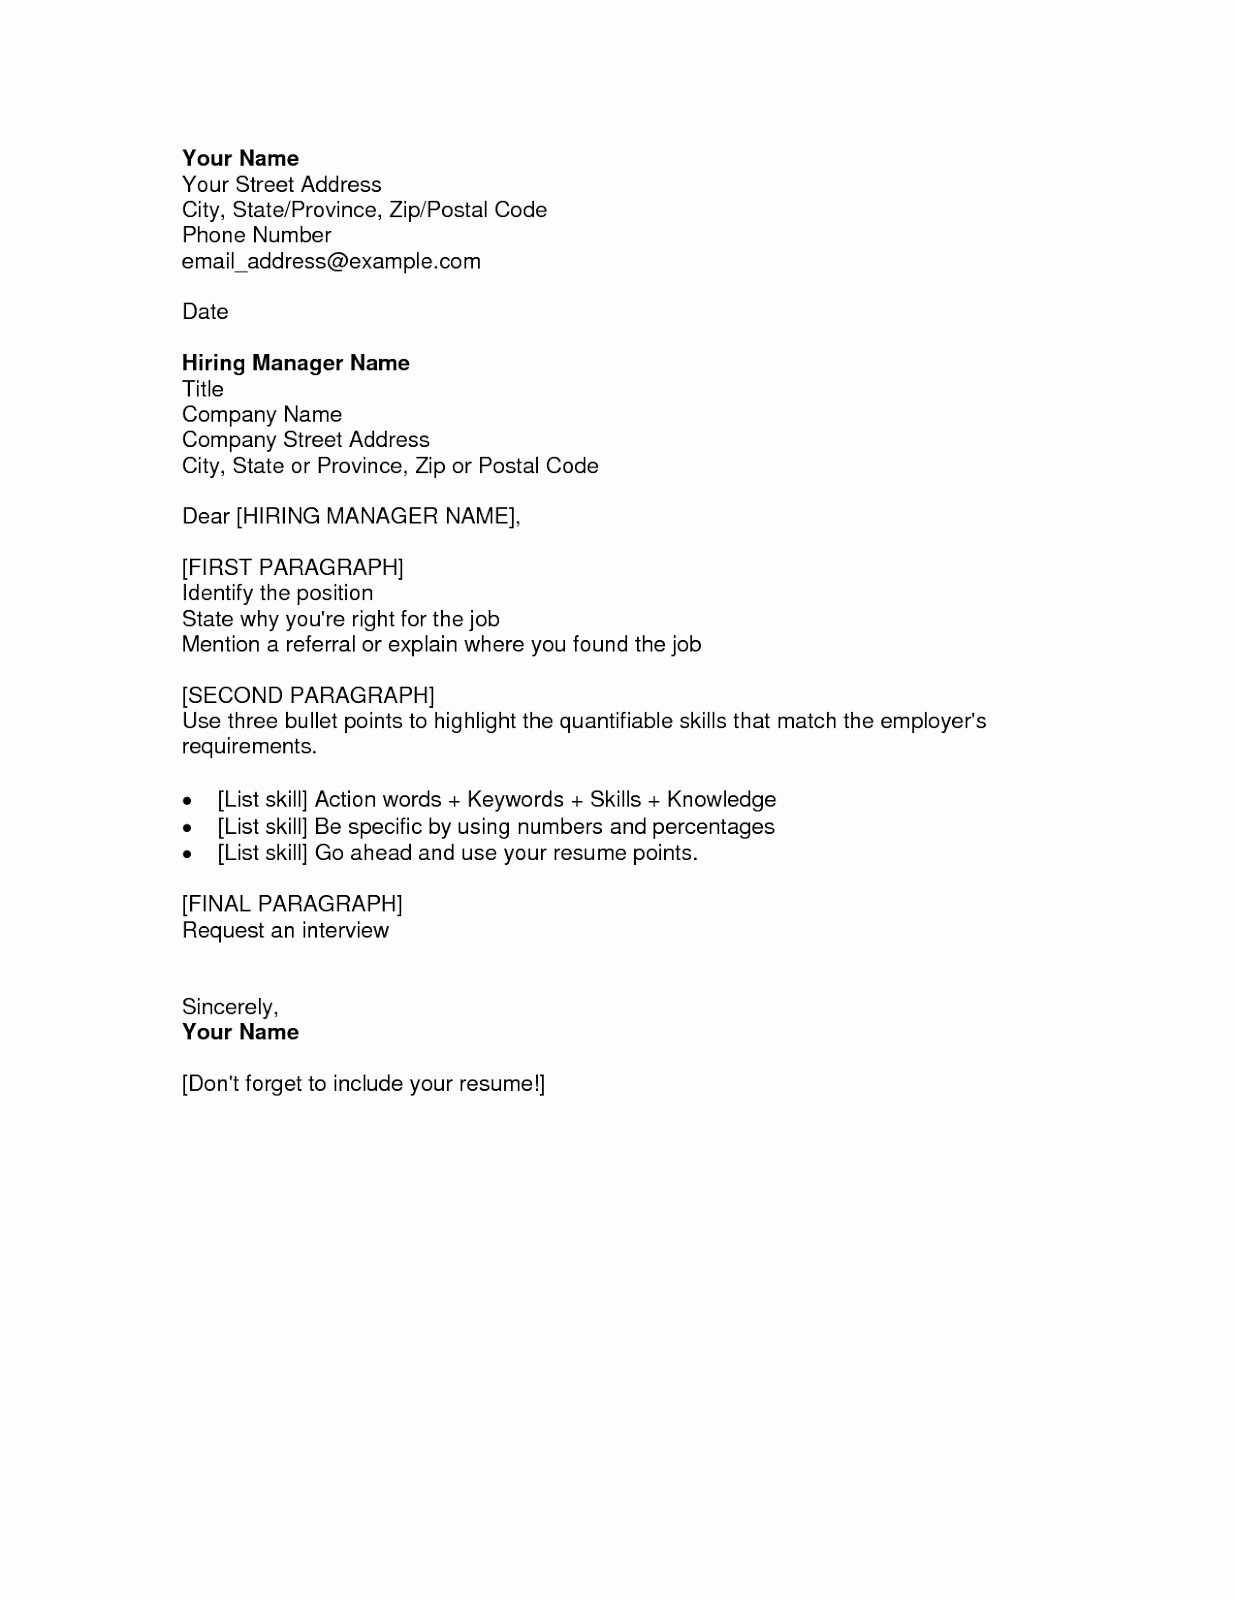 Free Cover Letter Samples for Resumes